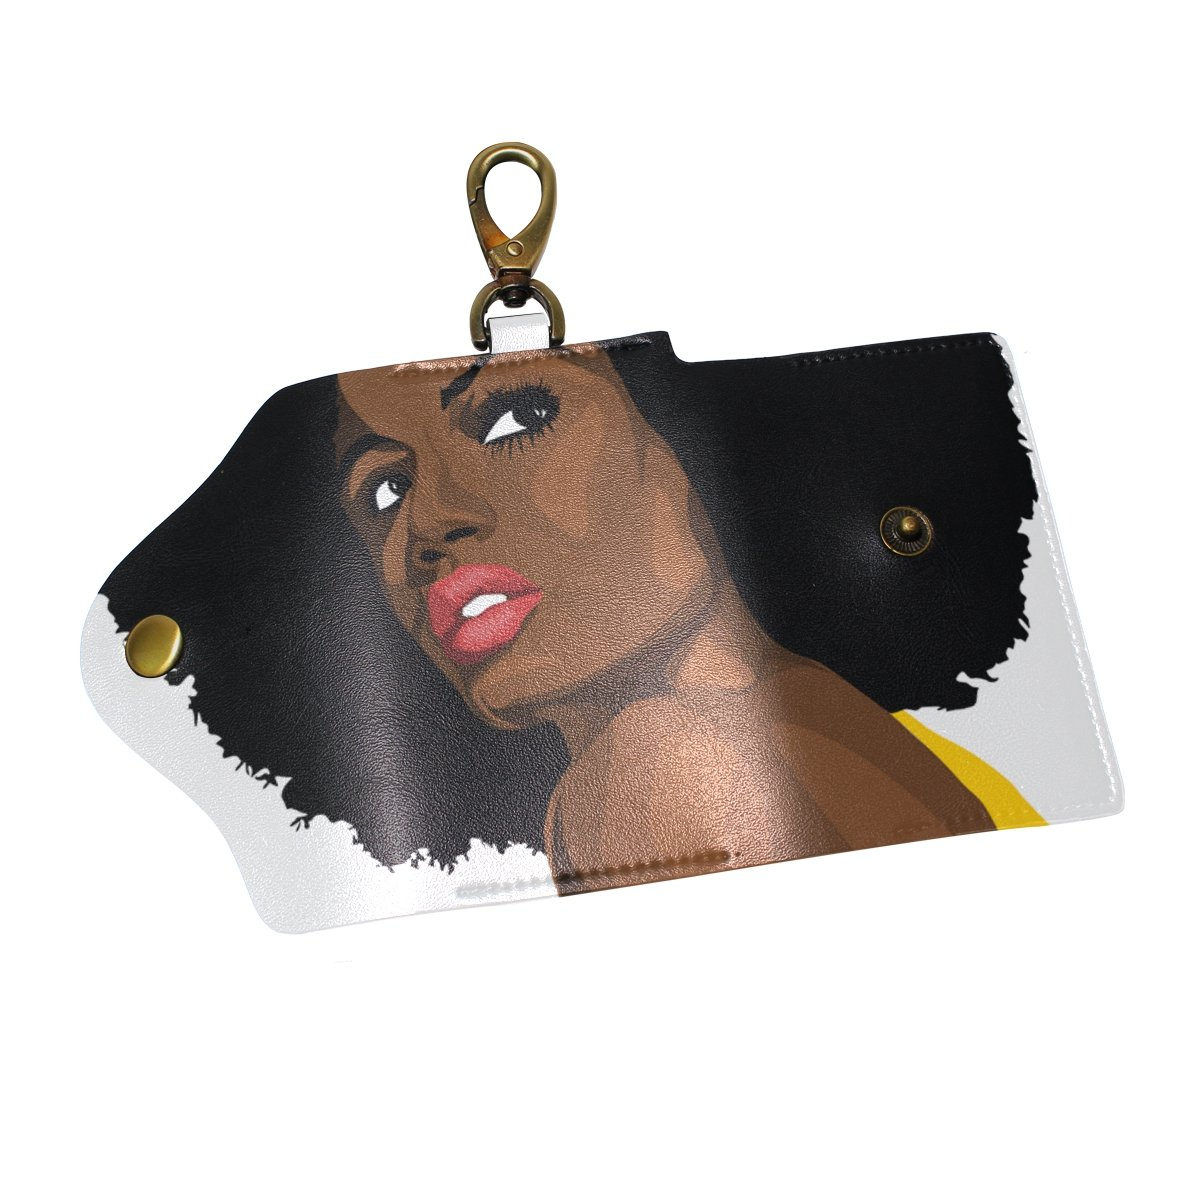 DEYYA African Women Leather Key Case Wallets Unisex Keychain Key Holder with 6 Hooks Snap Closure